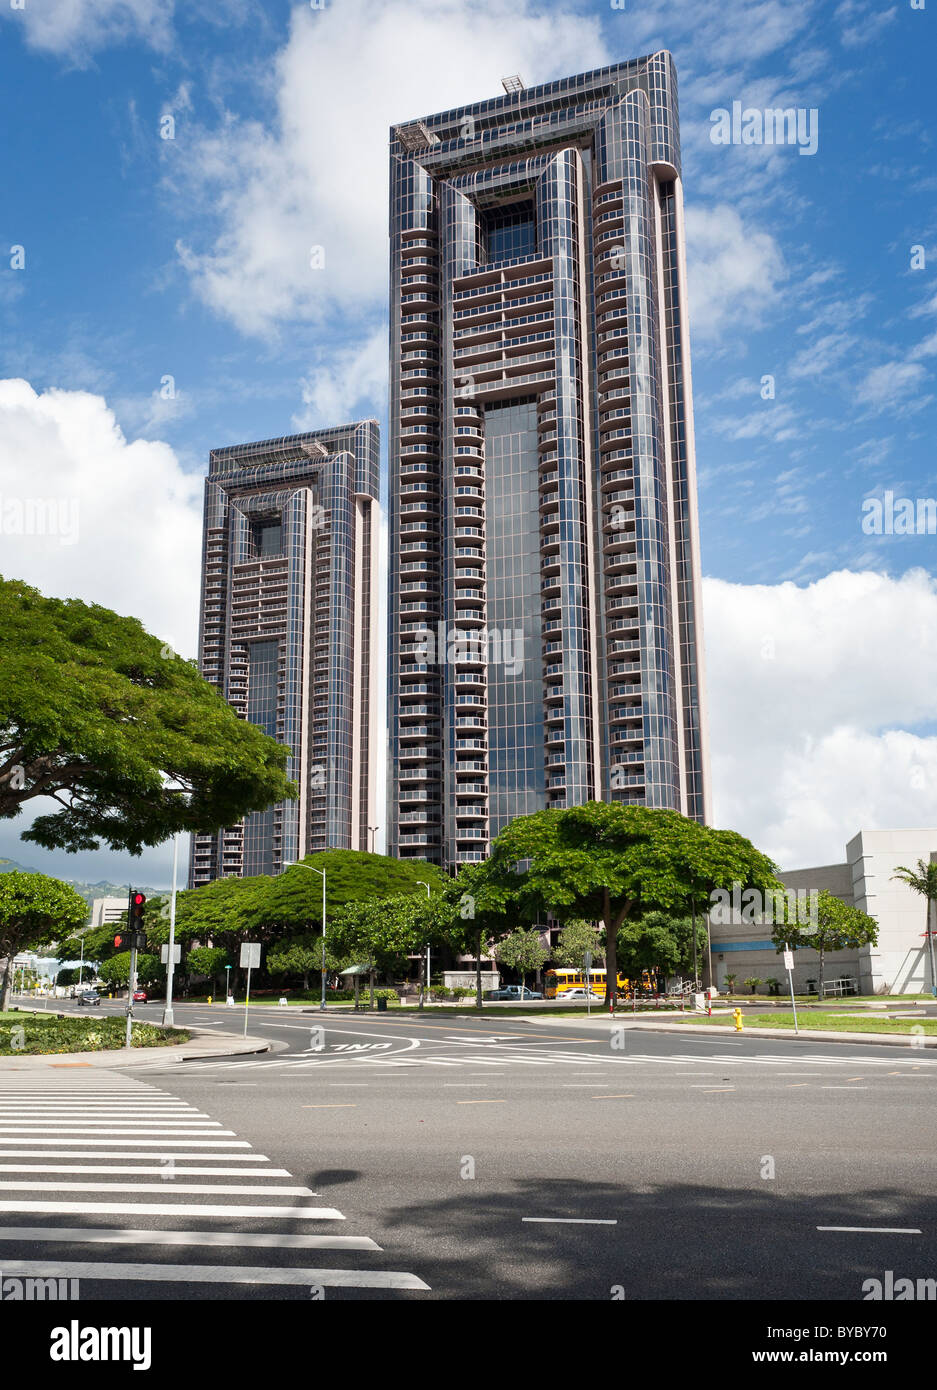 One Waterfront Tower. Twin condo towers built in 1990 have great views of Honolulu harbor are a city landmark. Mauka - Stock Image